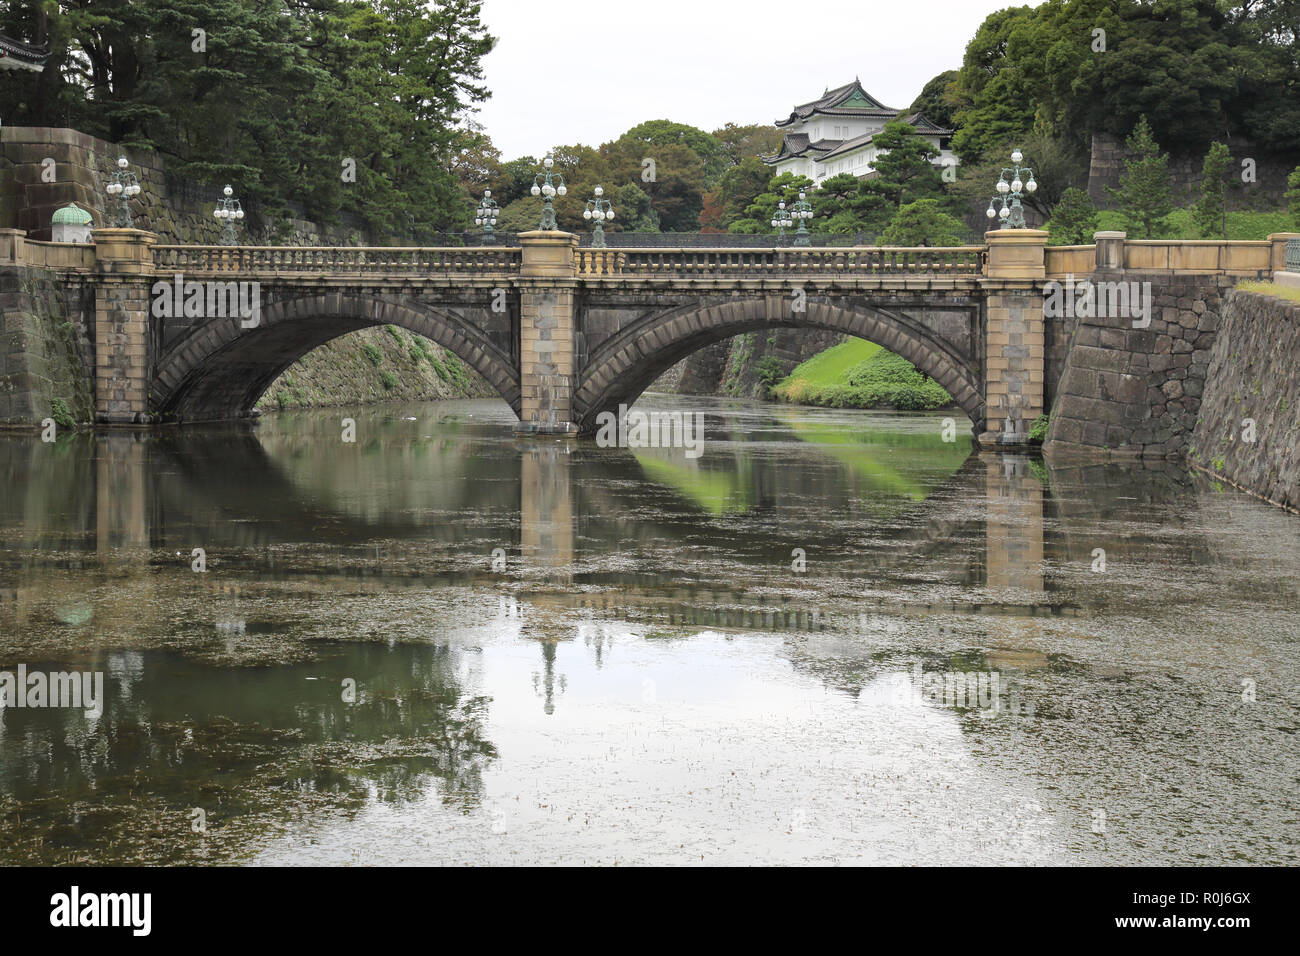 the nijubashi bridge at the imperial palace tokyo japan - Stock Image